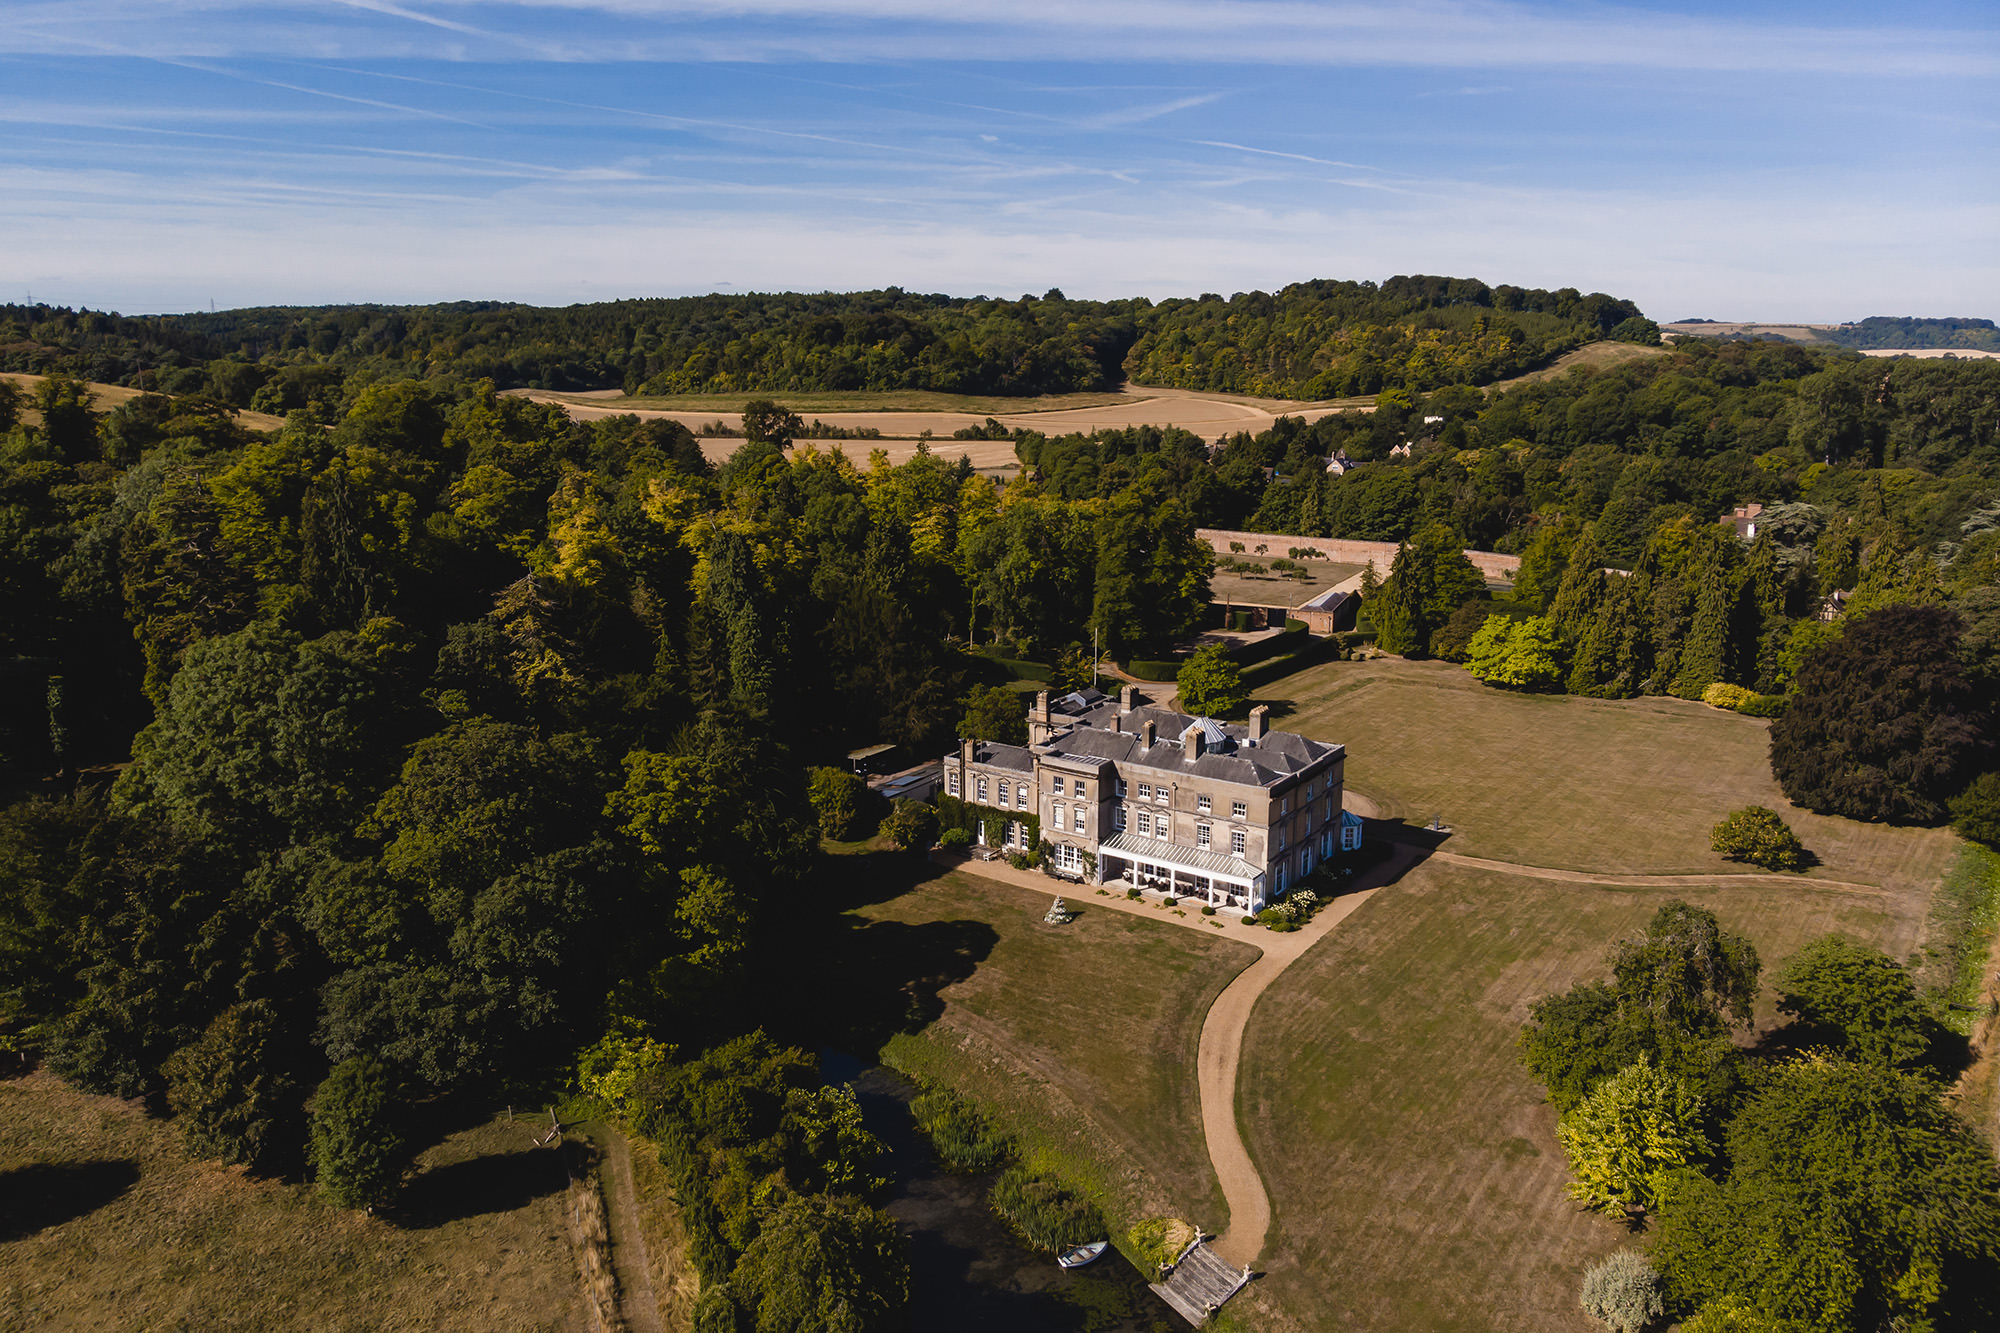 drone picture of hexton manor